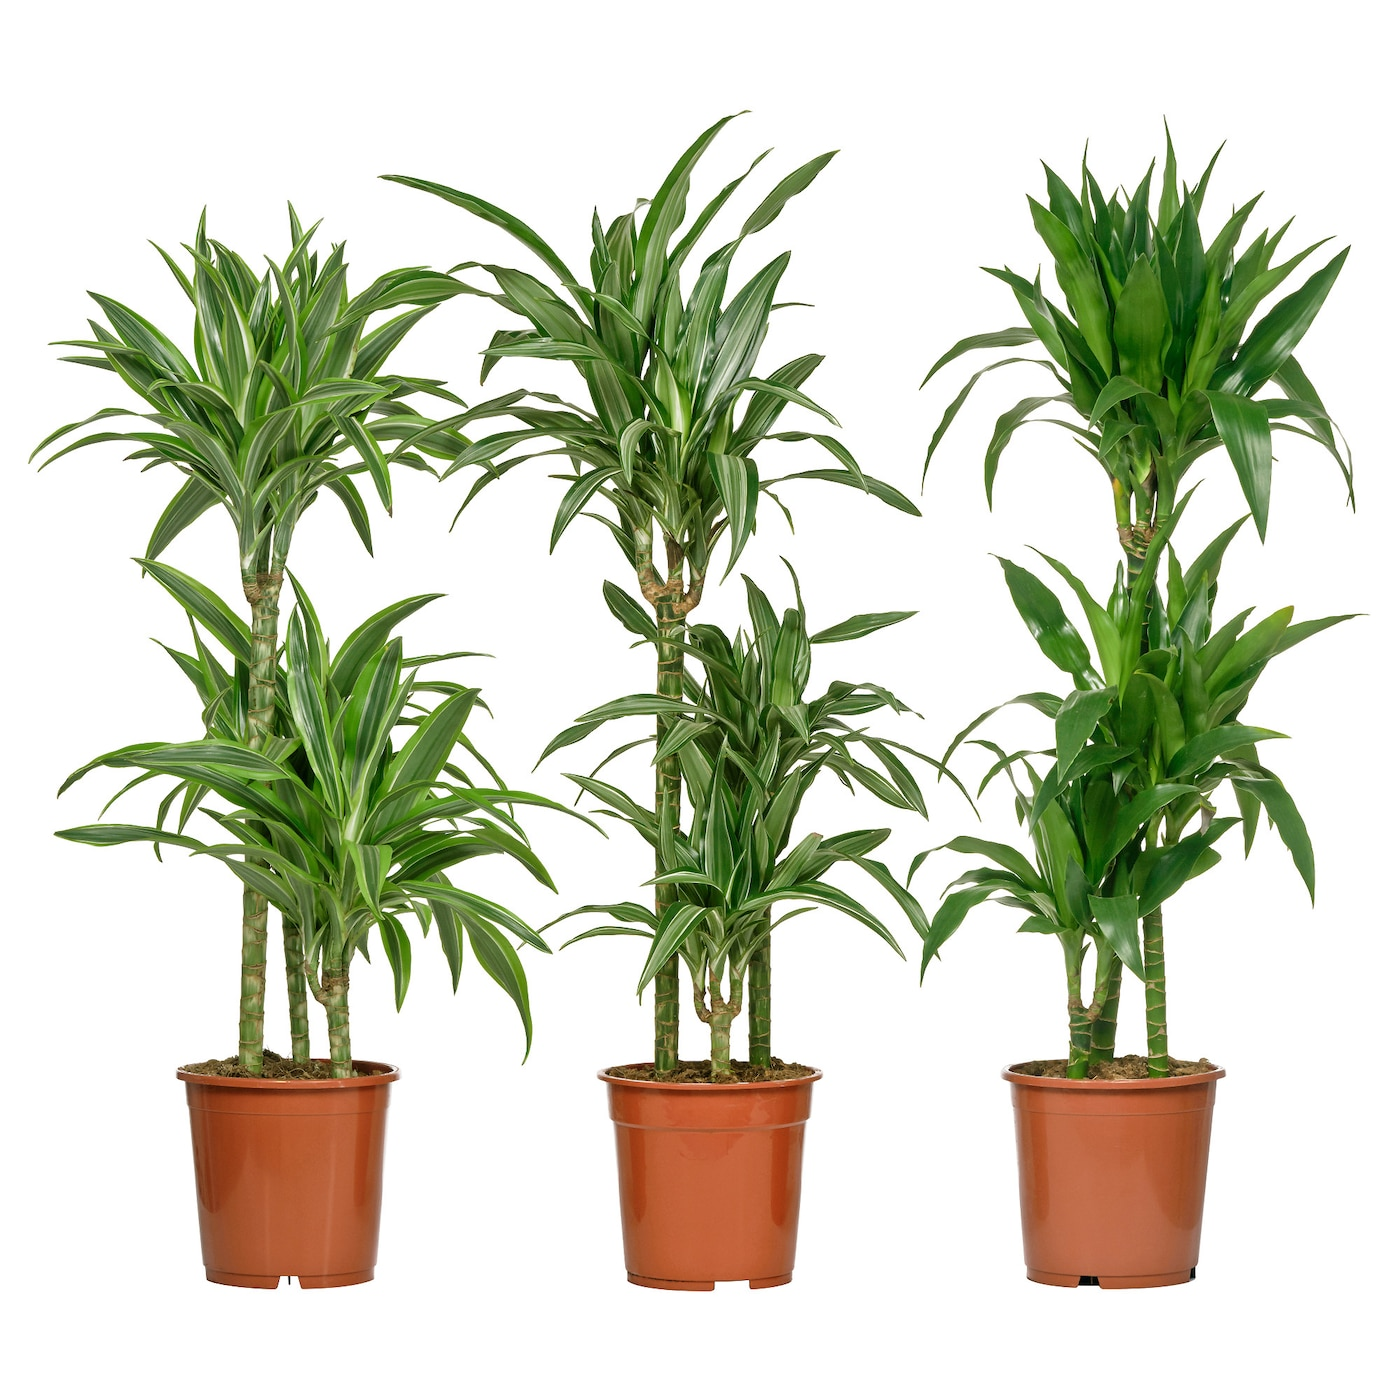 Dracaena deremensis plante en pot diverses esp ces 3 tiges for Plante en pot